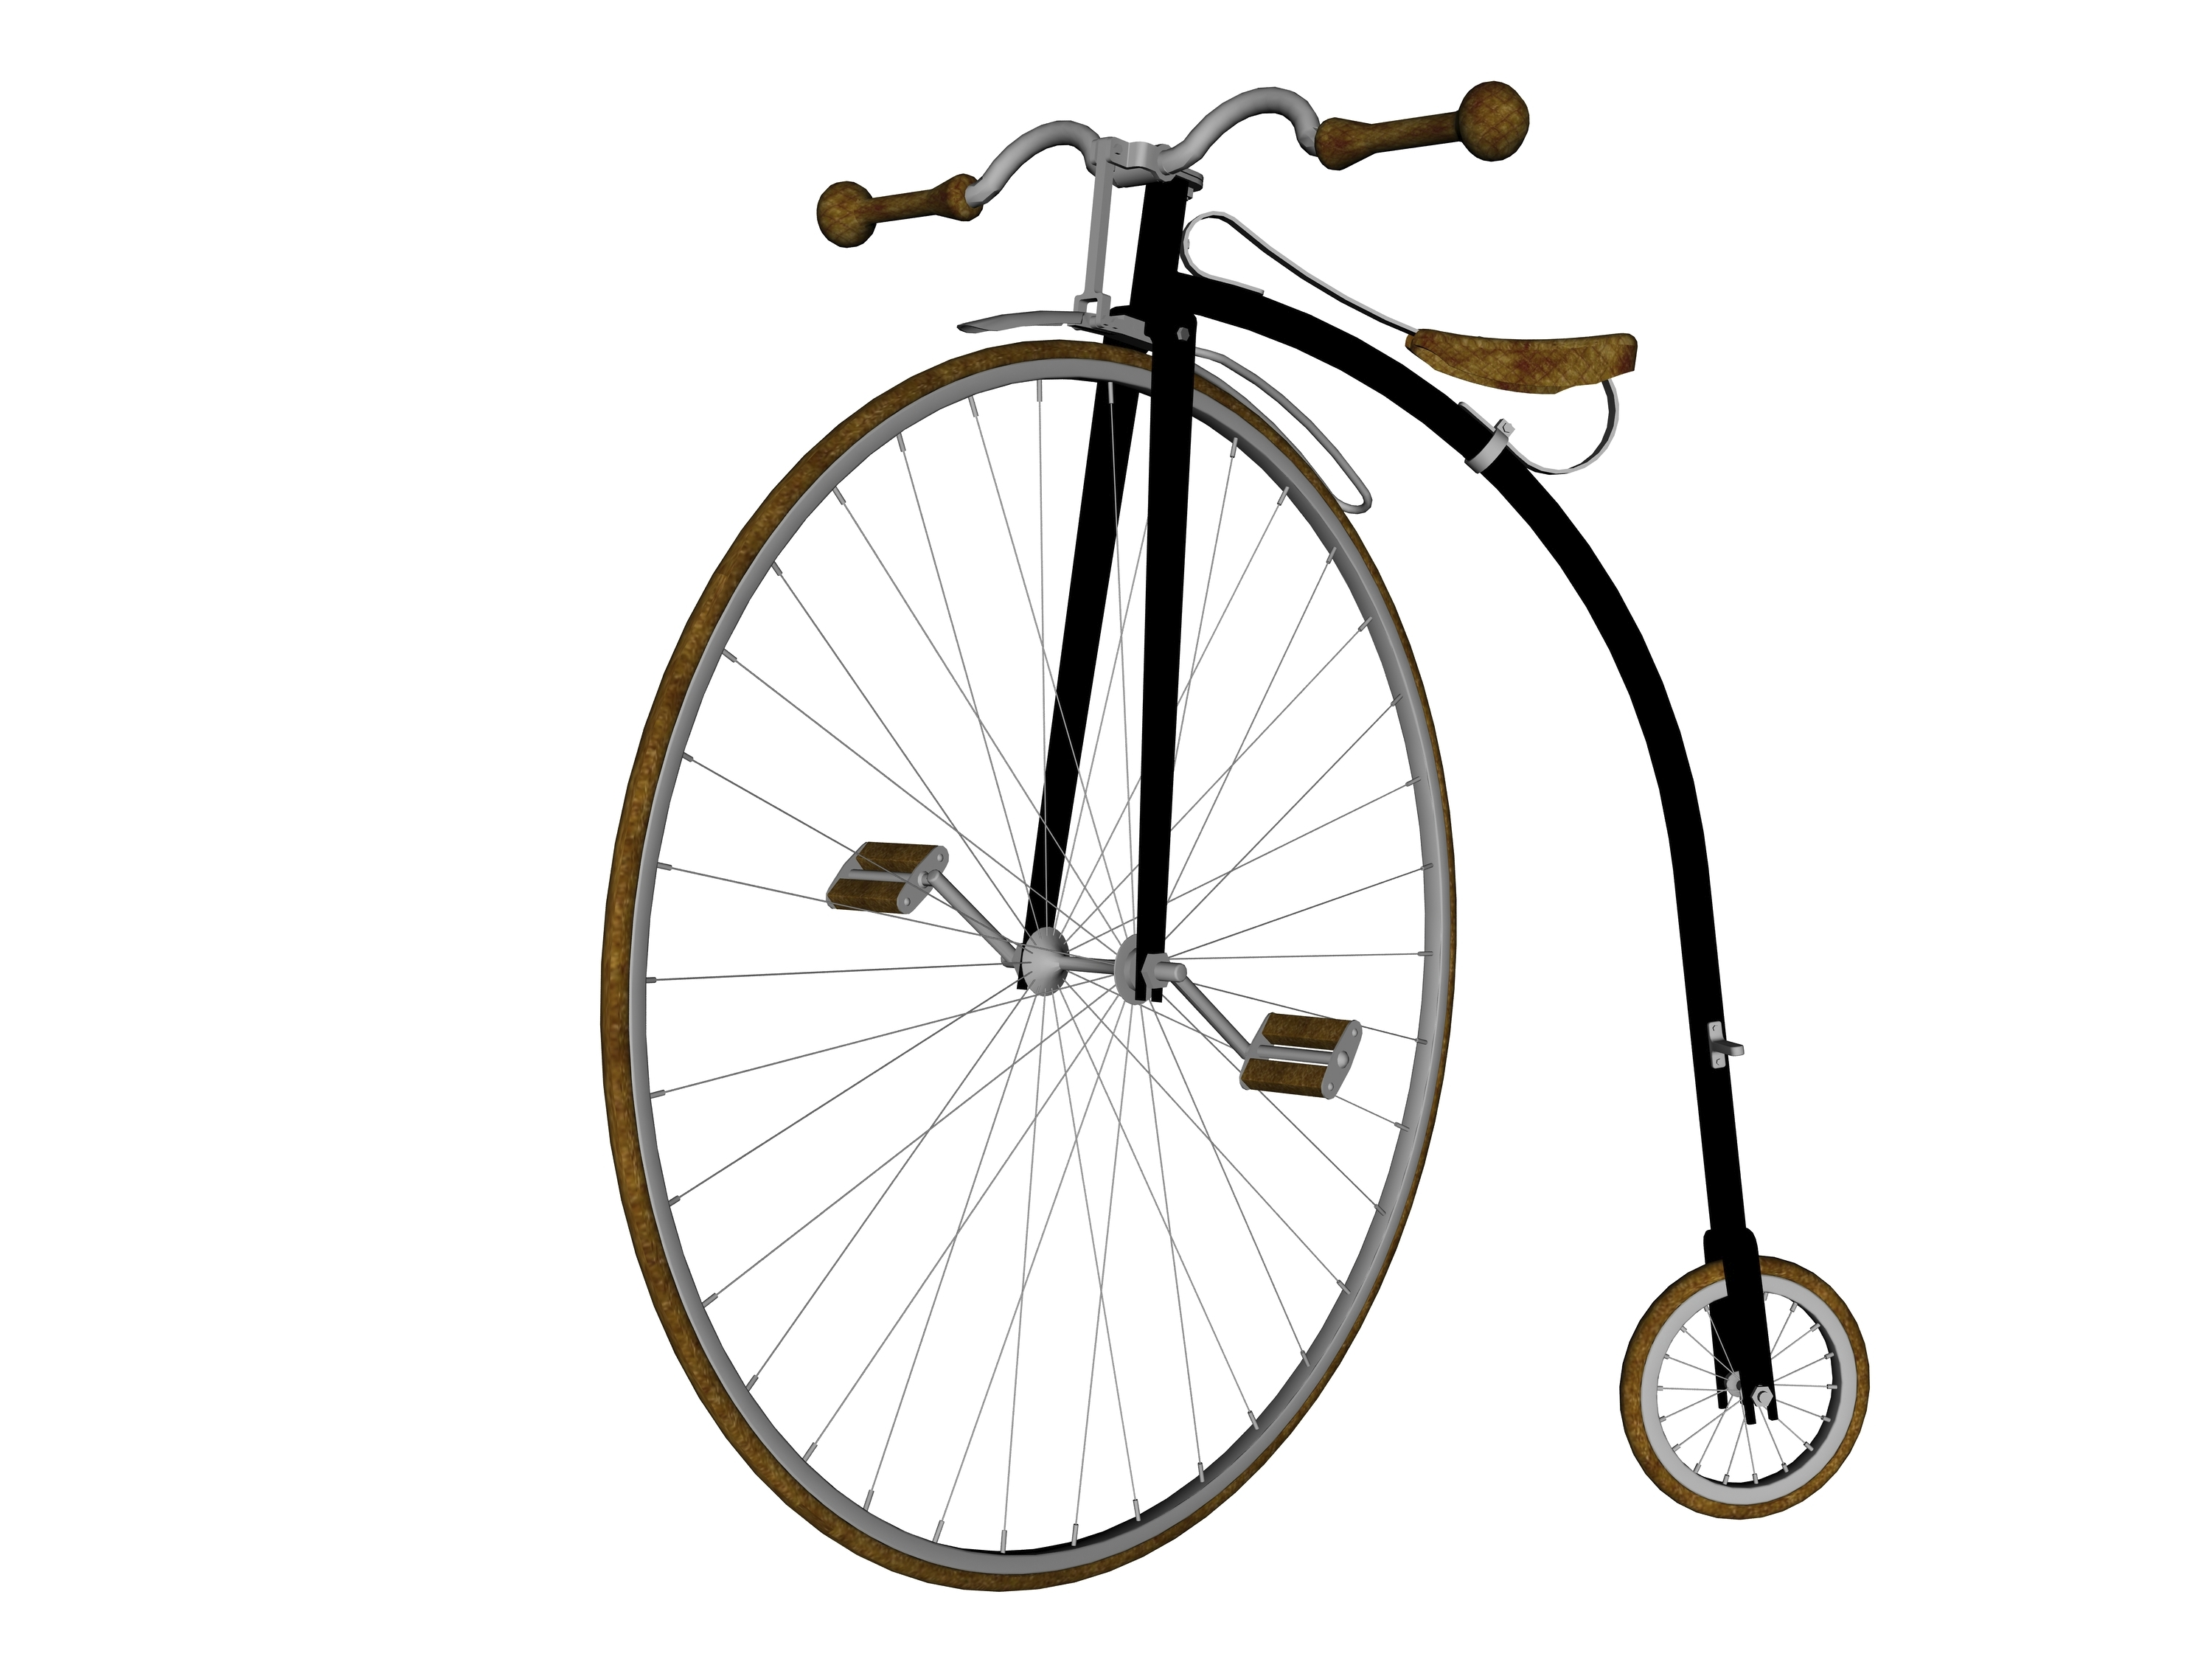 Why Did The Penny Farthing Have A Large Front Wheel